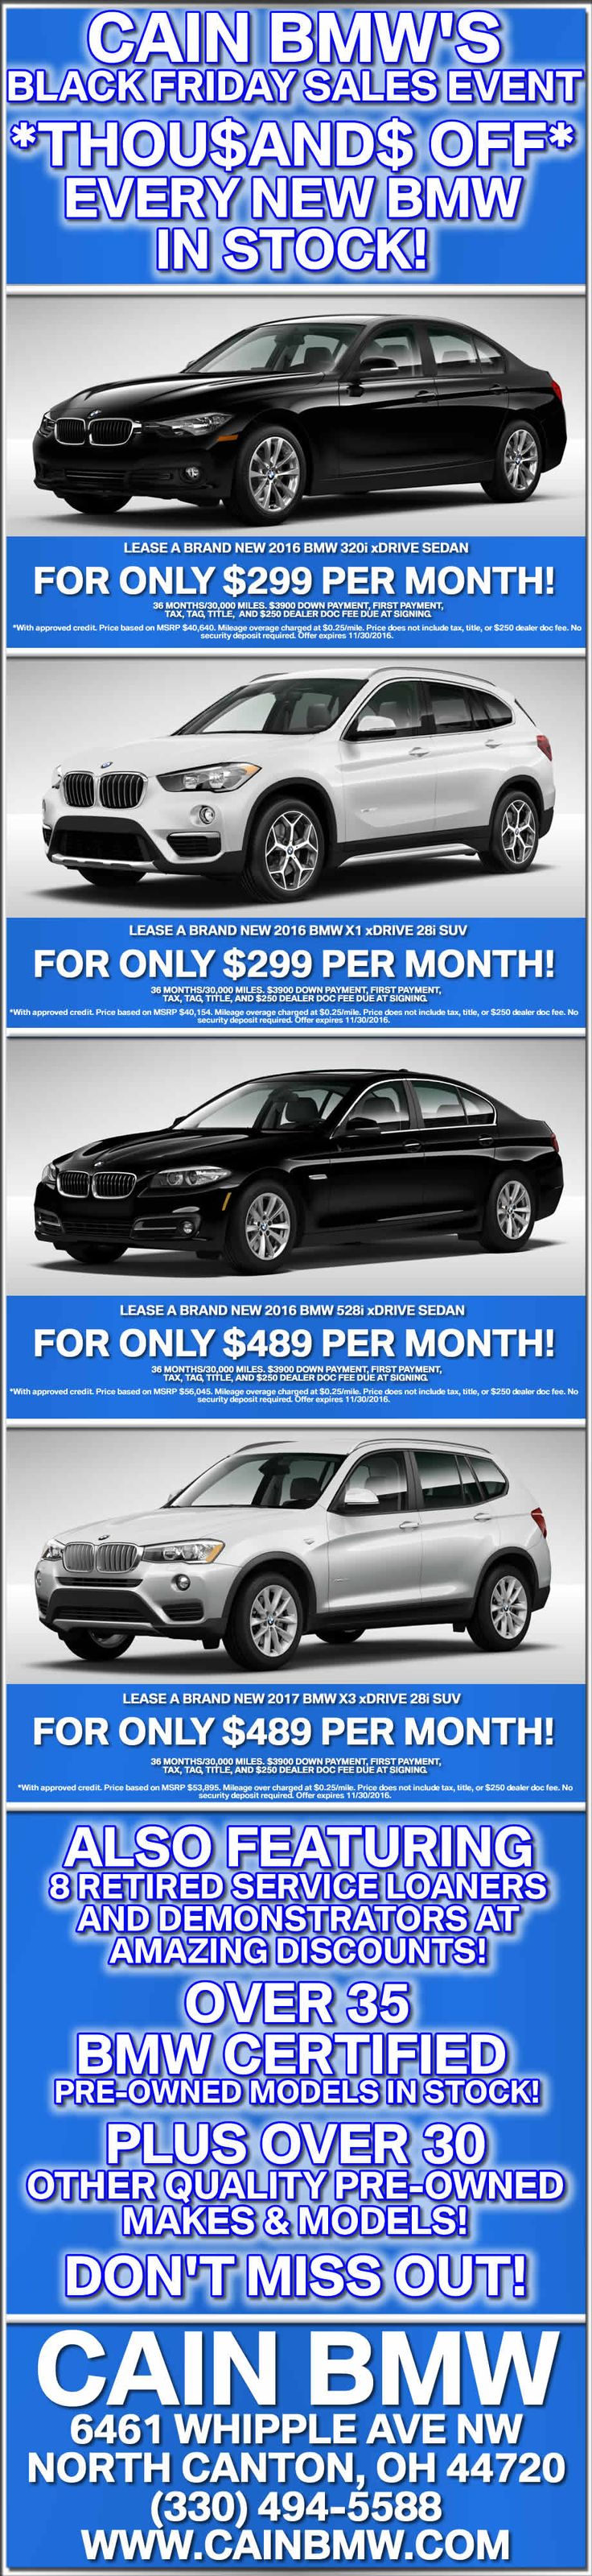 Our #BlackFriday event is on! Stop in this weekend & save big $$ on new #BMW models, Demos & Courtesy Vehicles, Certifed Pre-Owned vehicles, and more! 11/25-11/30/16 only!